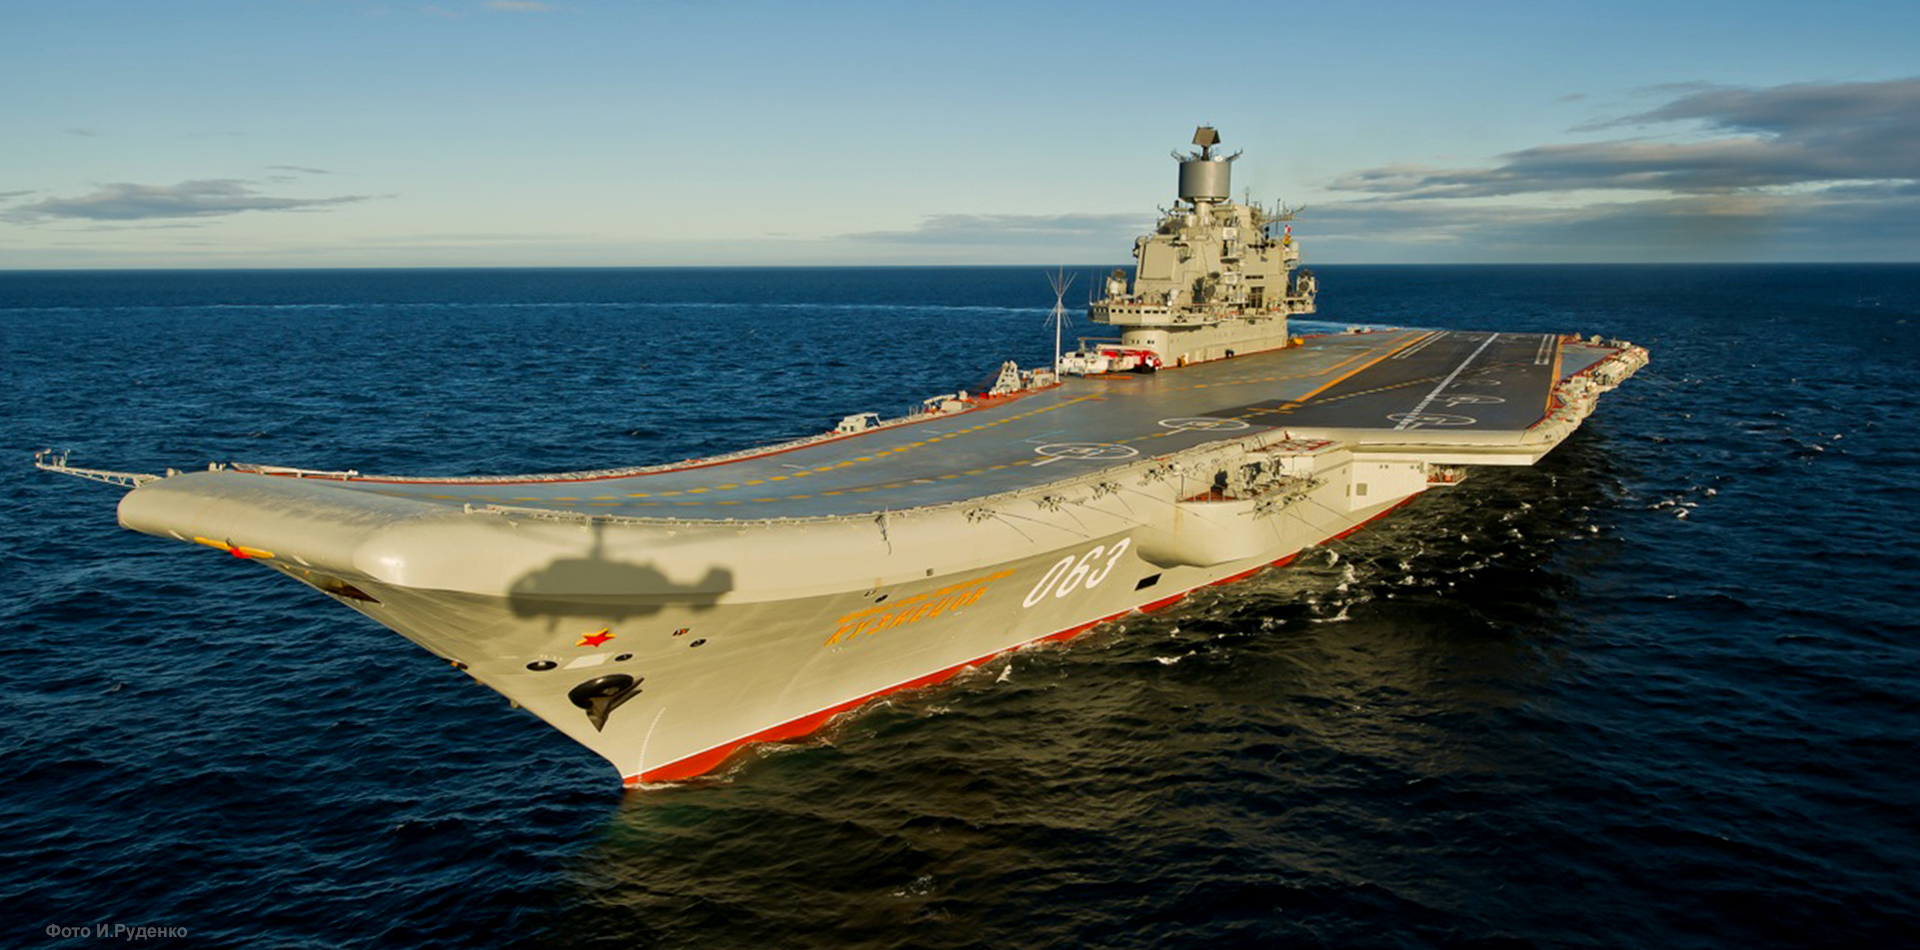 Russia's Only Aircraft Carrier Will Soon Be Out of Action for 3 Years